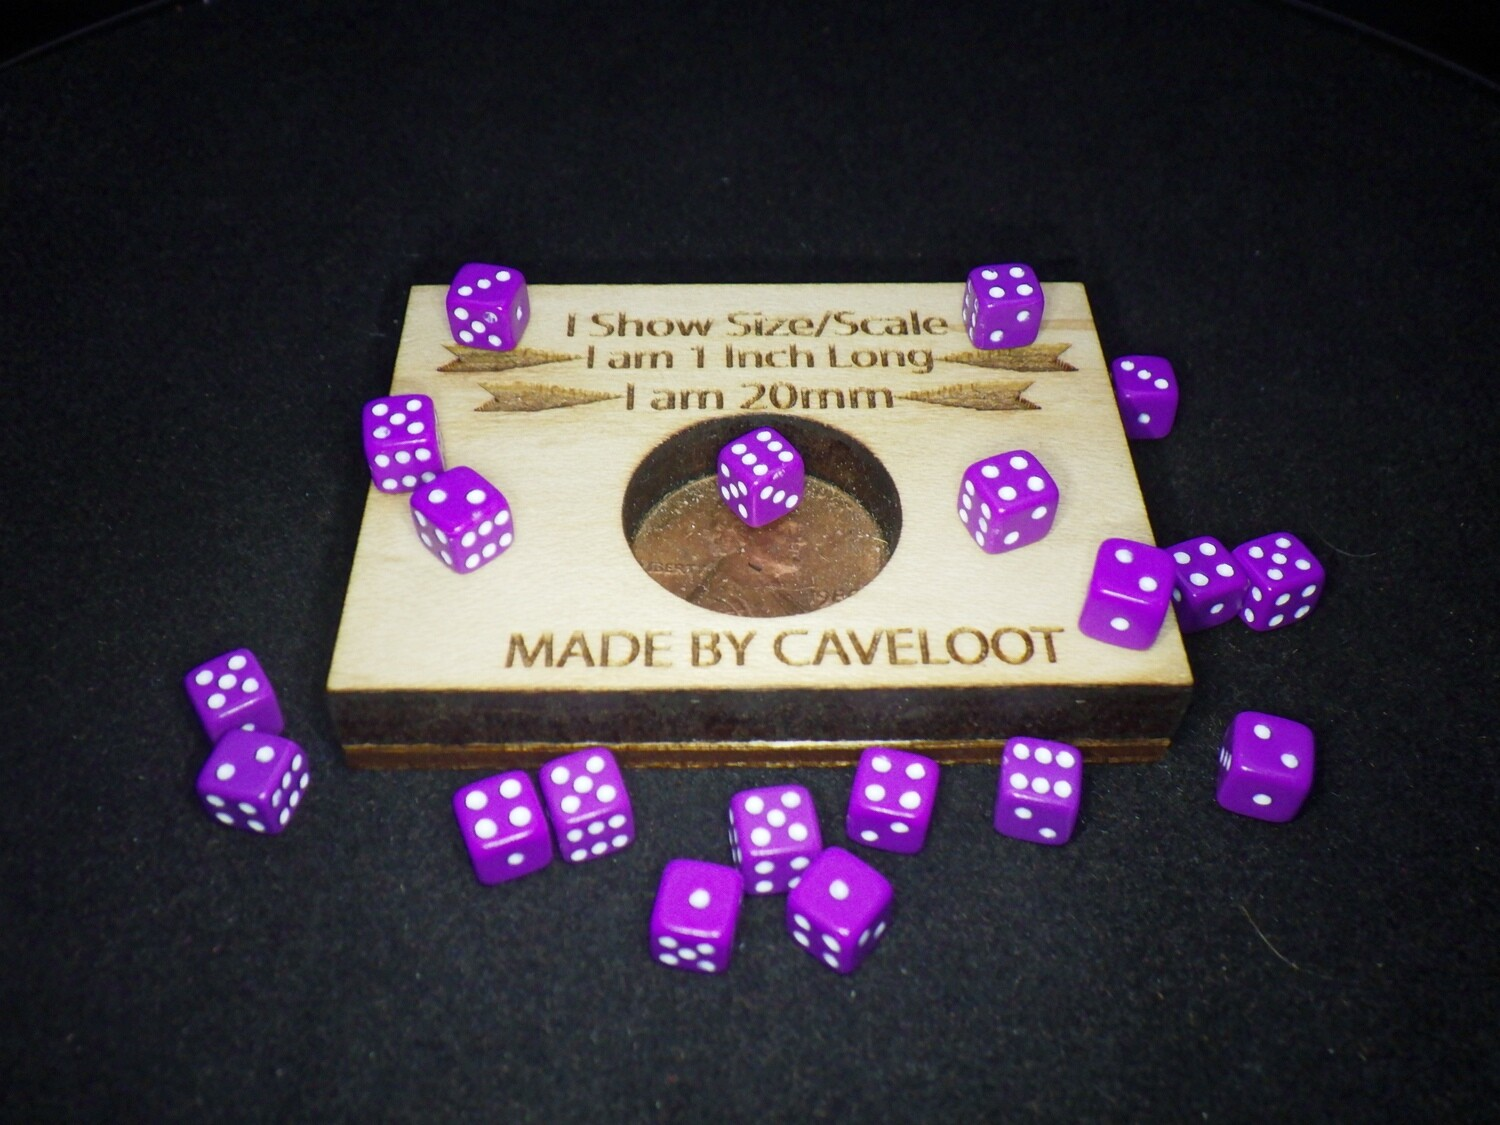 Twenty Purple with White 5MM OPAQUE Color Gaming Dice Rounded Corner Tabletop RPG Roleplay Tokens Counters Markers CCG Magic Card Board